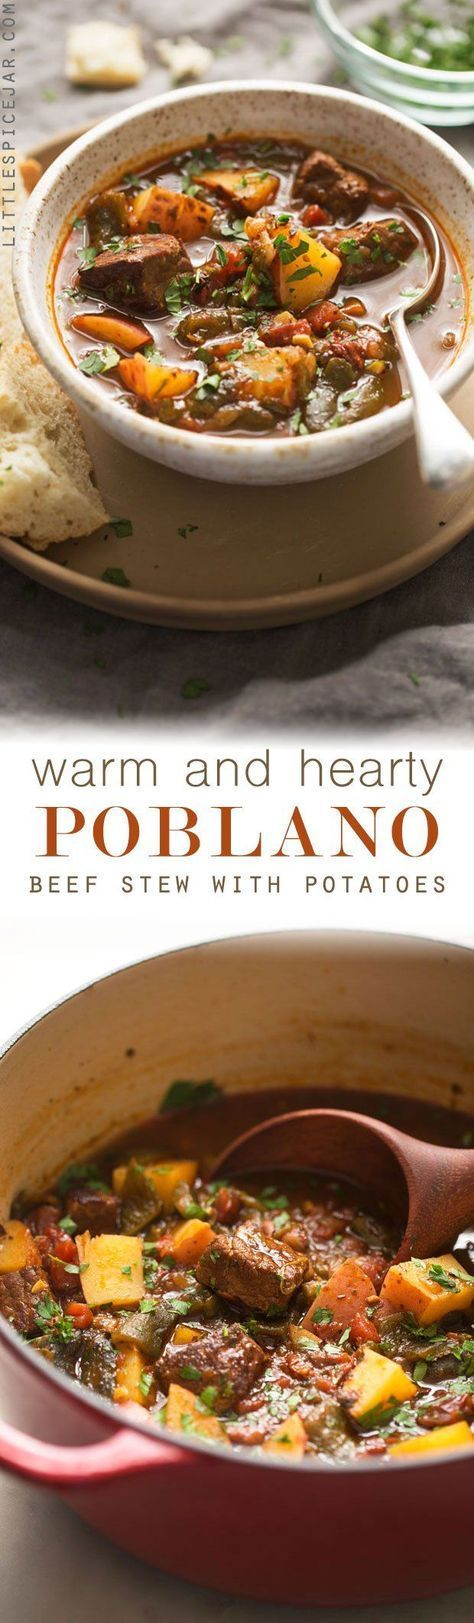 Hearty Poblano Beef Stew - a beef stew that's been amped up with roasted poblanos and chipotle peppers! So good you'll forget about your old stew recipe! #beefstew #stew #poblanobeefstew | http://Littlespicejar.com